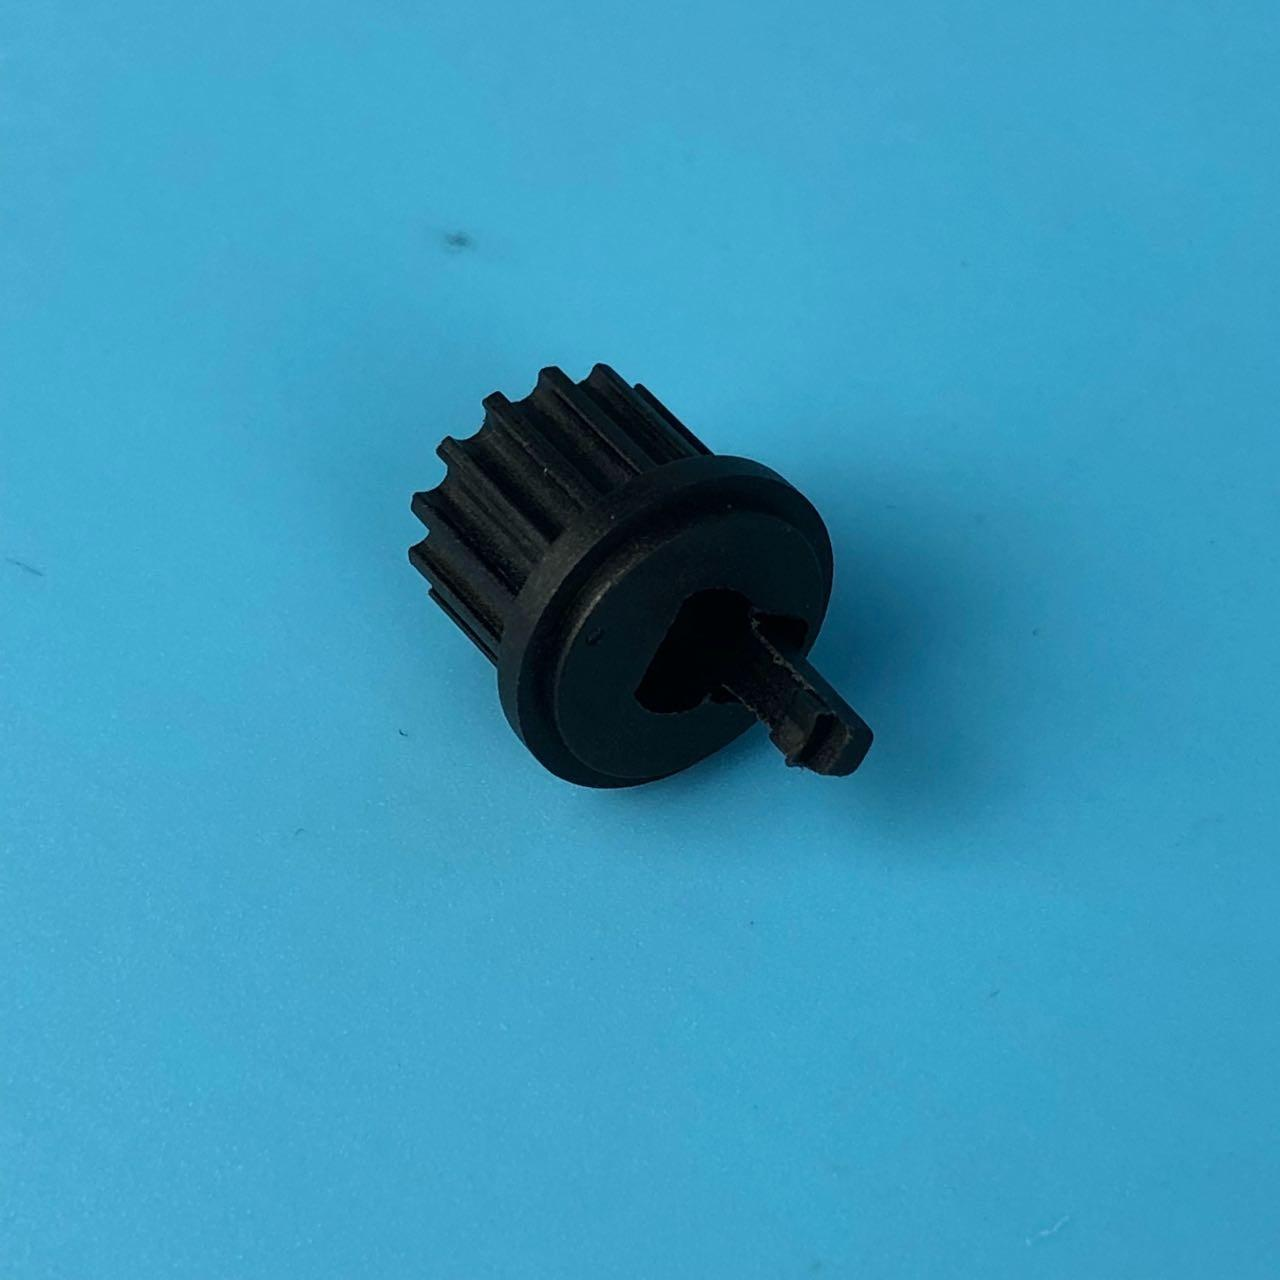 Buy cheap ATM Parts Diebold Opteva Parts Black Gear 14 tooth 49-202752-000A ATM machine Parts 49202752000A from Wholesalers